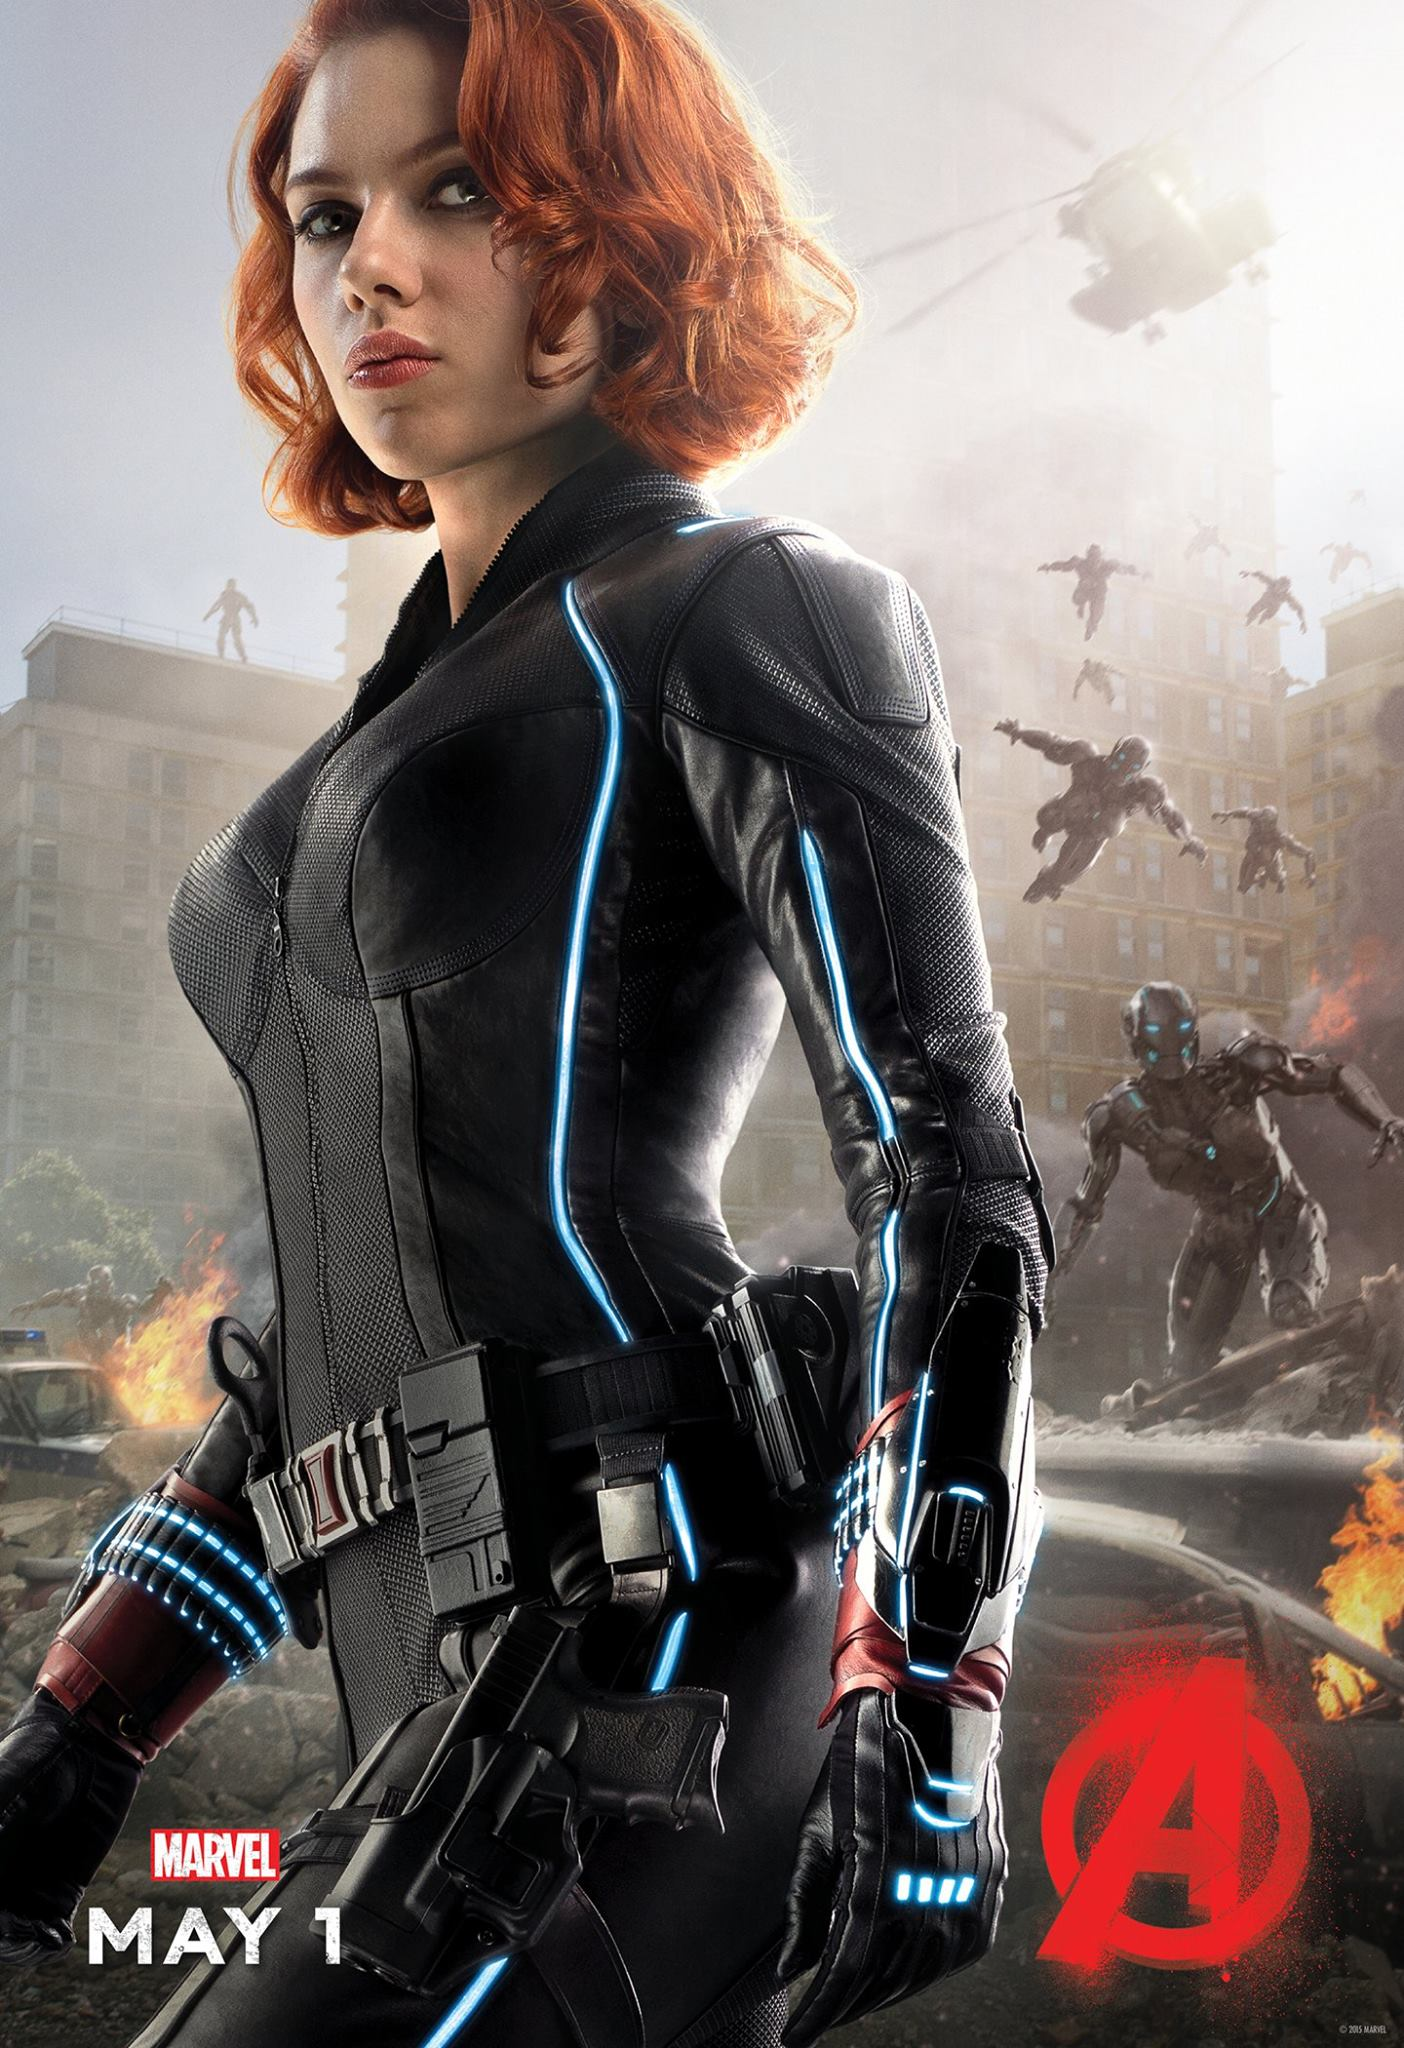 Avengers: Age of Ultron Black Widow Poster